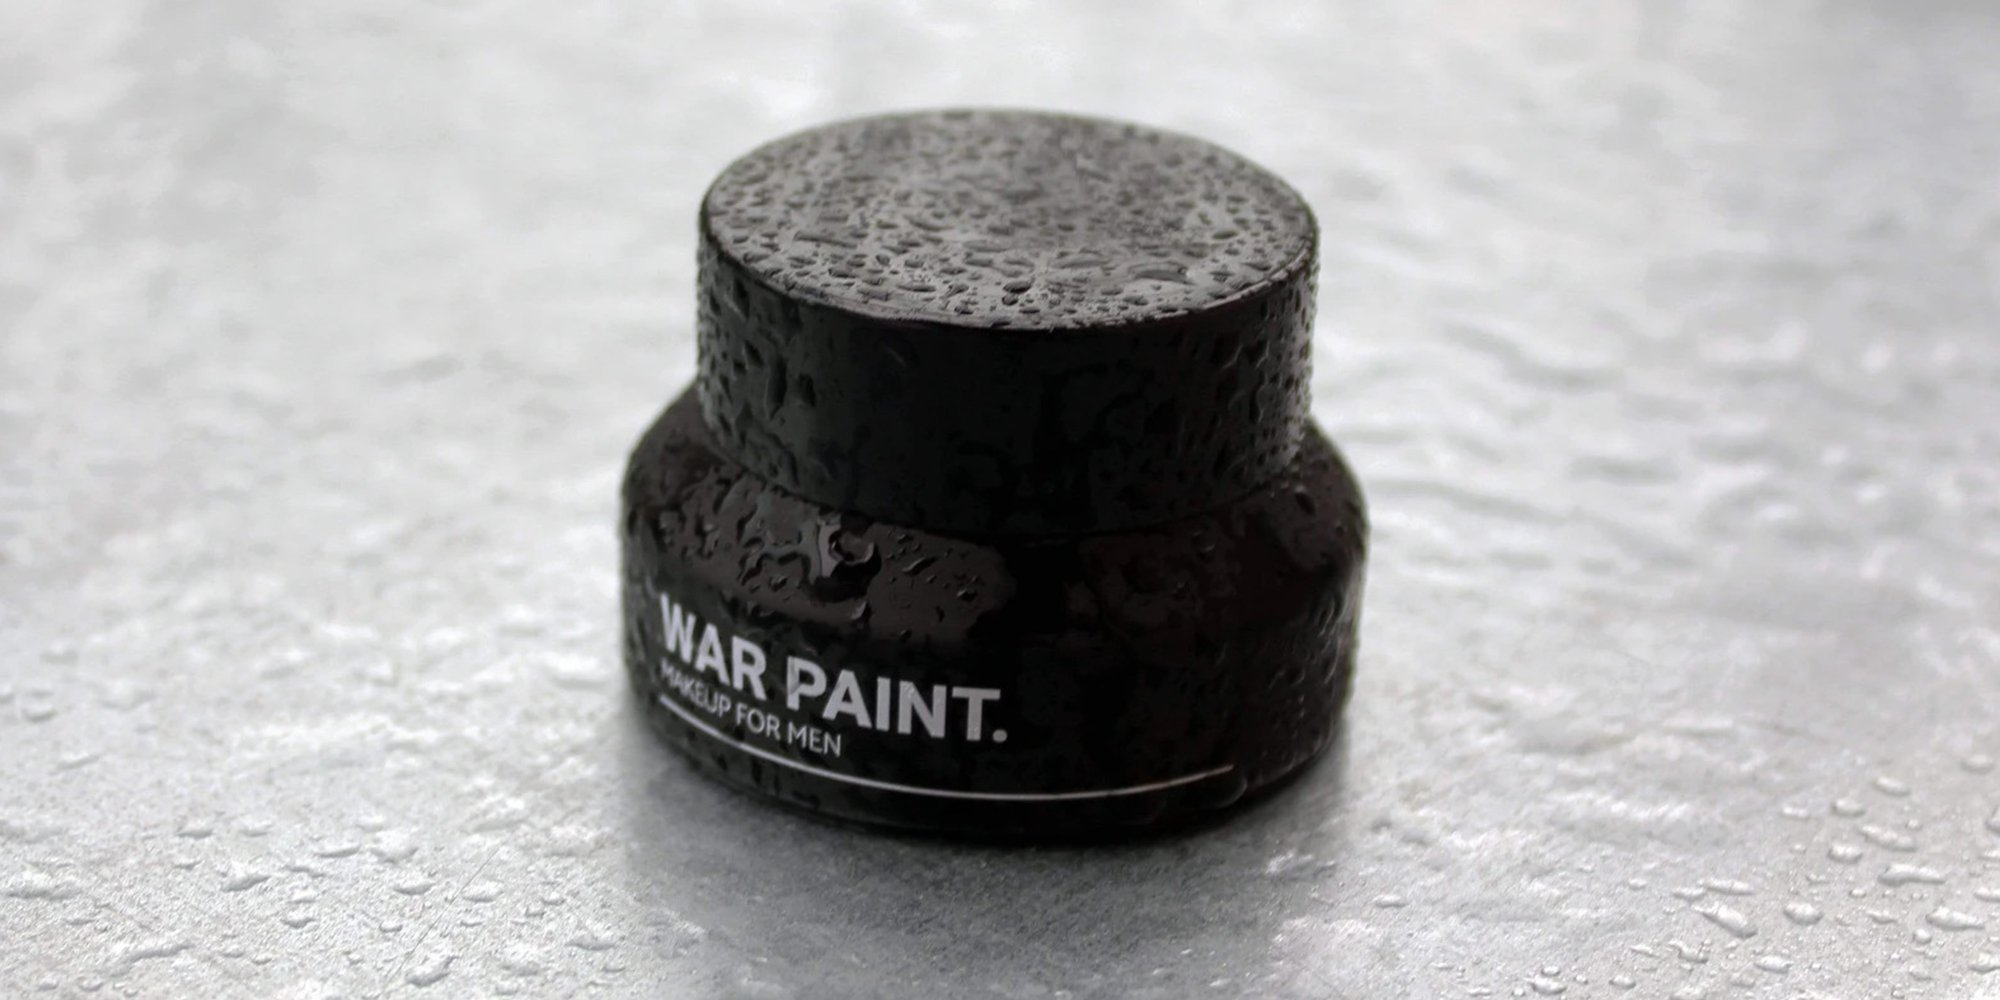 Men's Makeup Brand War Paint Secures More Than $1M To Propel Expansion